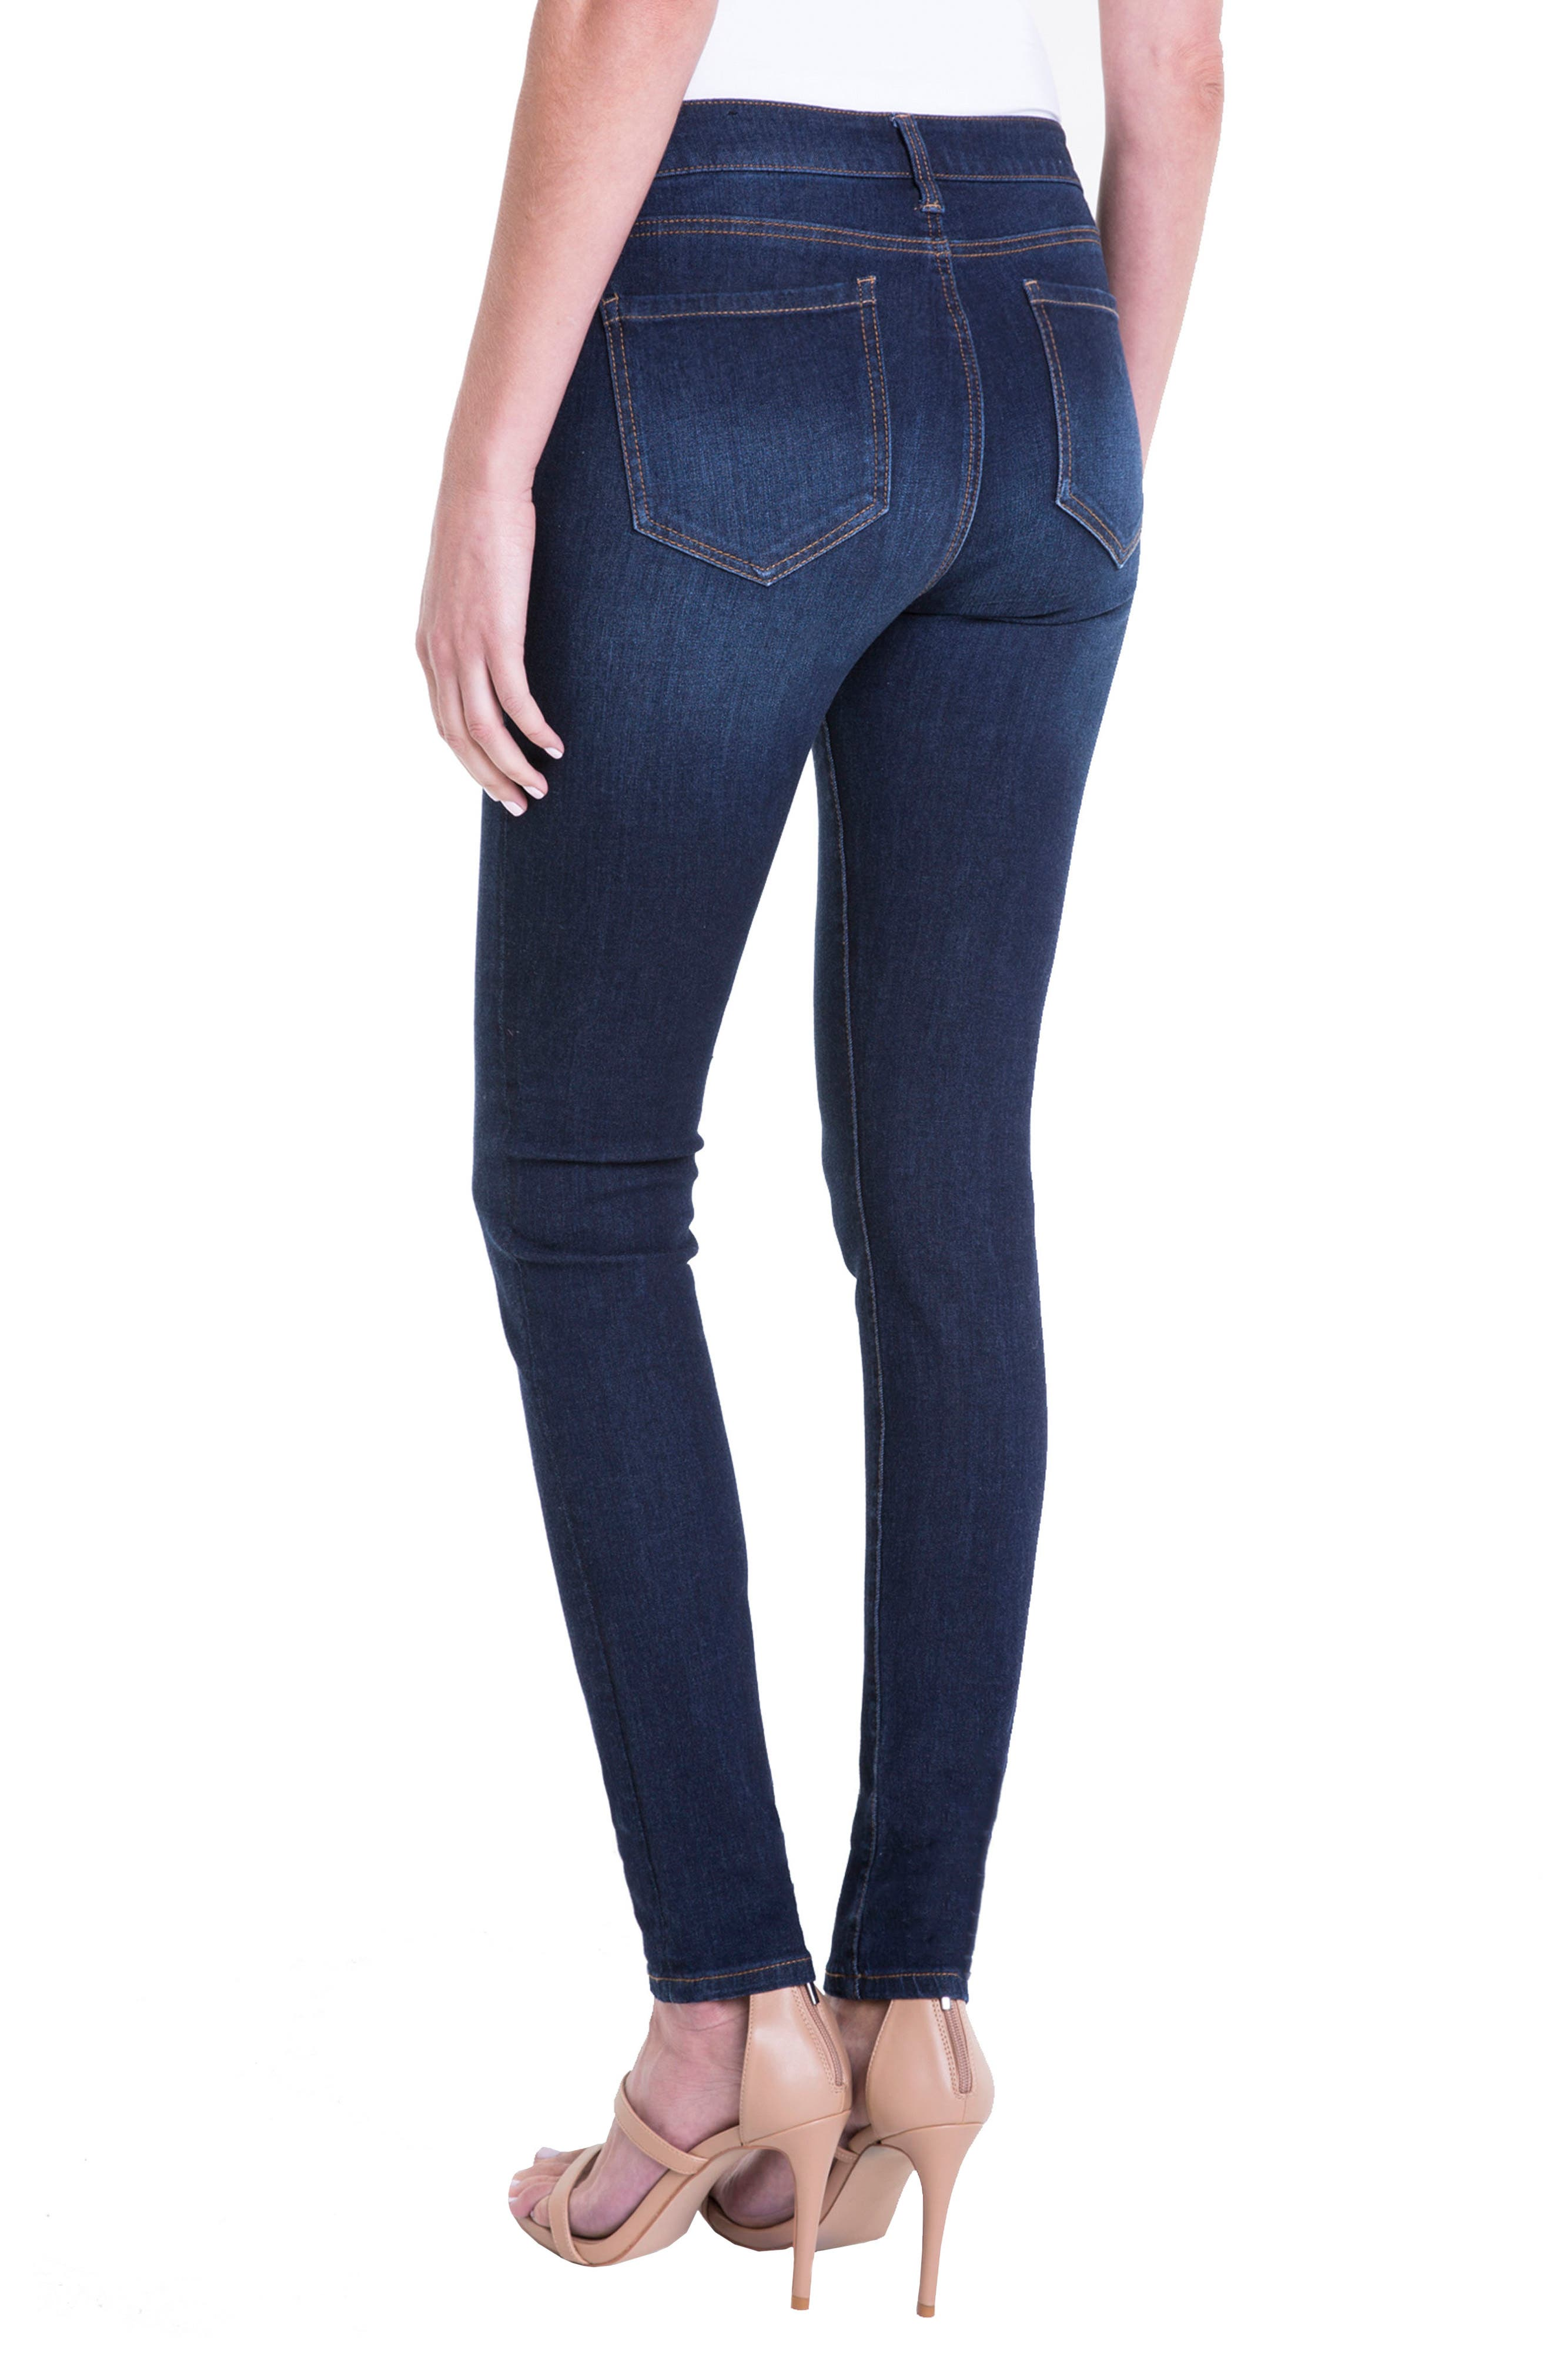 Abby Stretch Curvy Fit Skinny Jeans,                             Alternate thumbnail 3, color,                             401